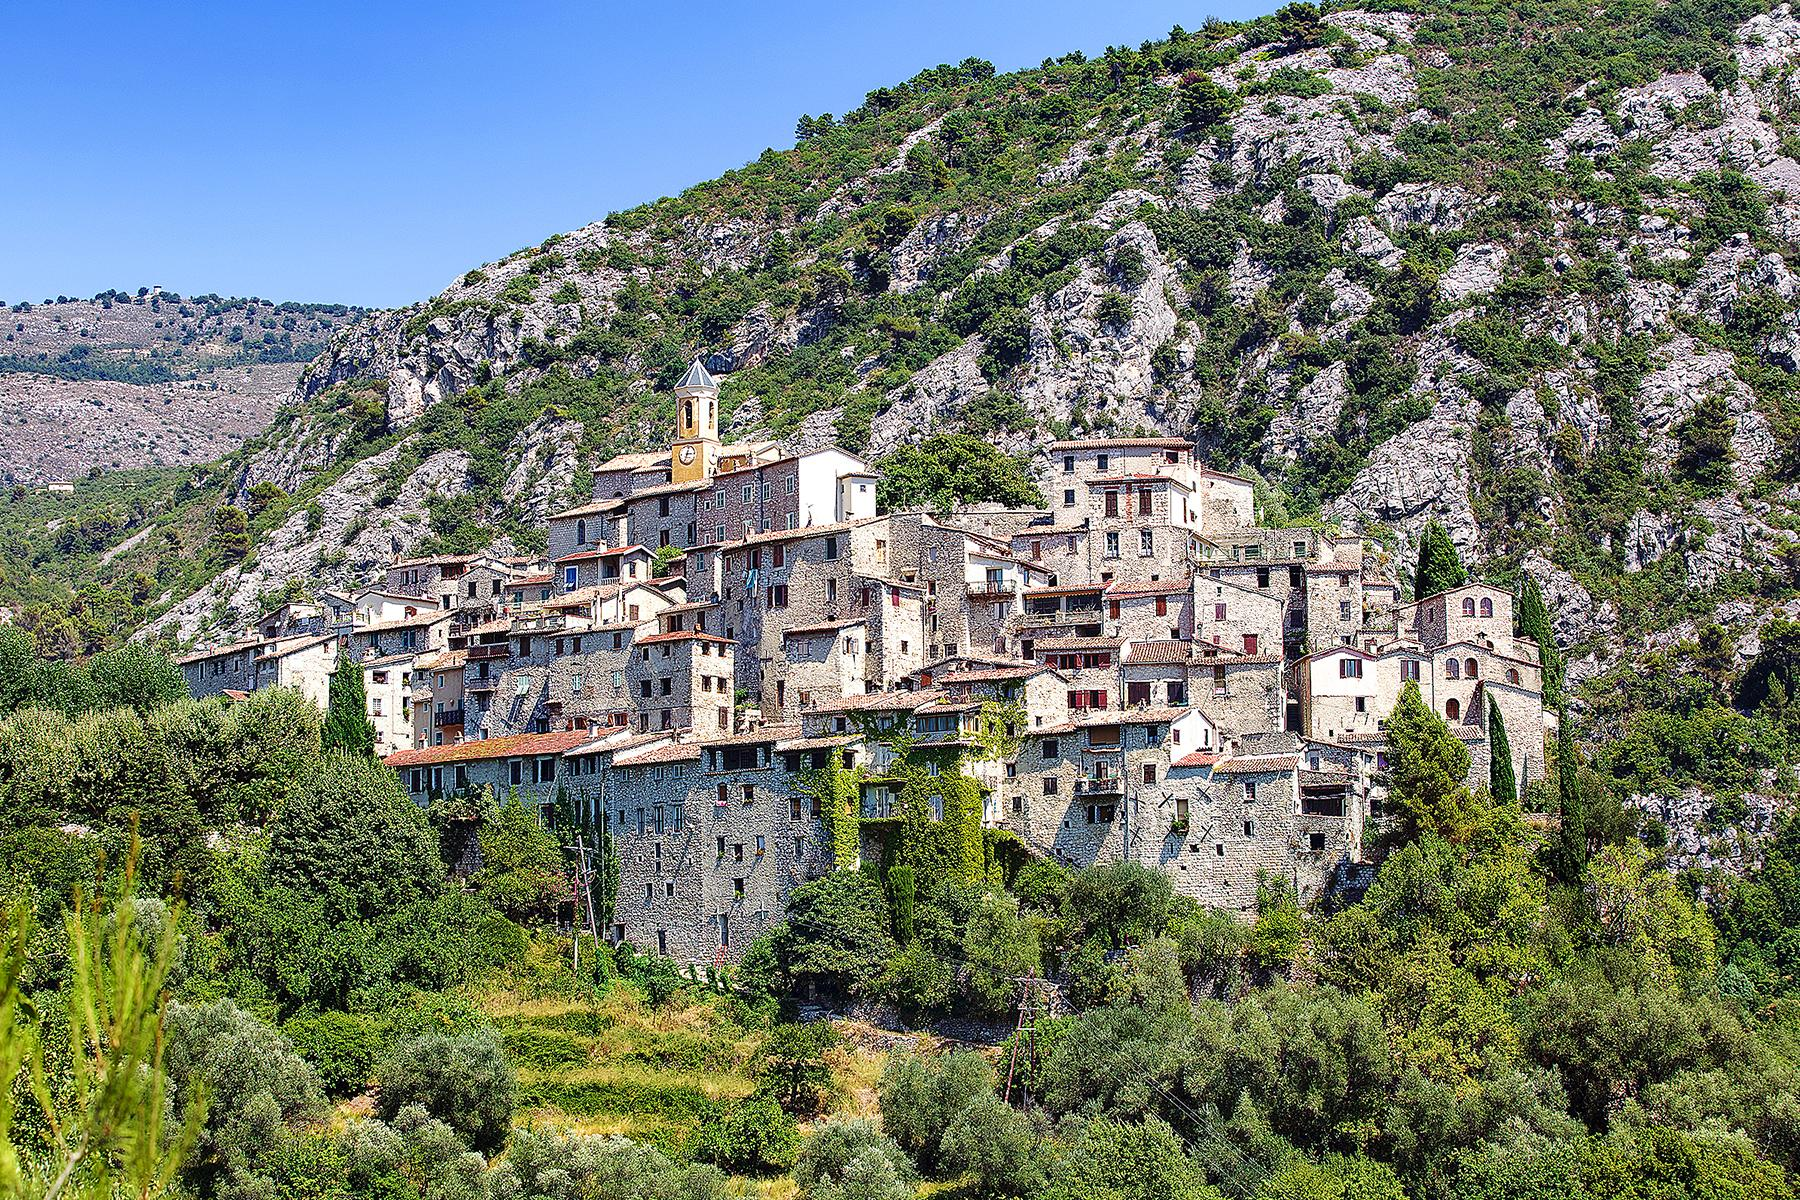 14_PicturePerfectProvenceTowns__Goult_shutterstock_547837798